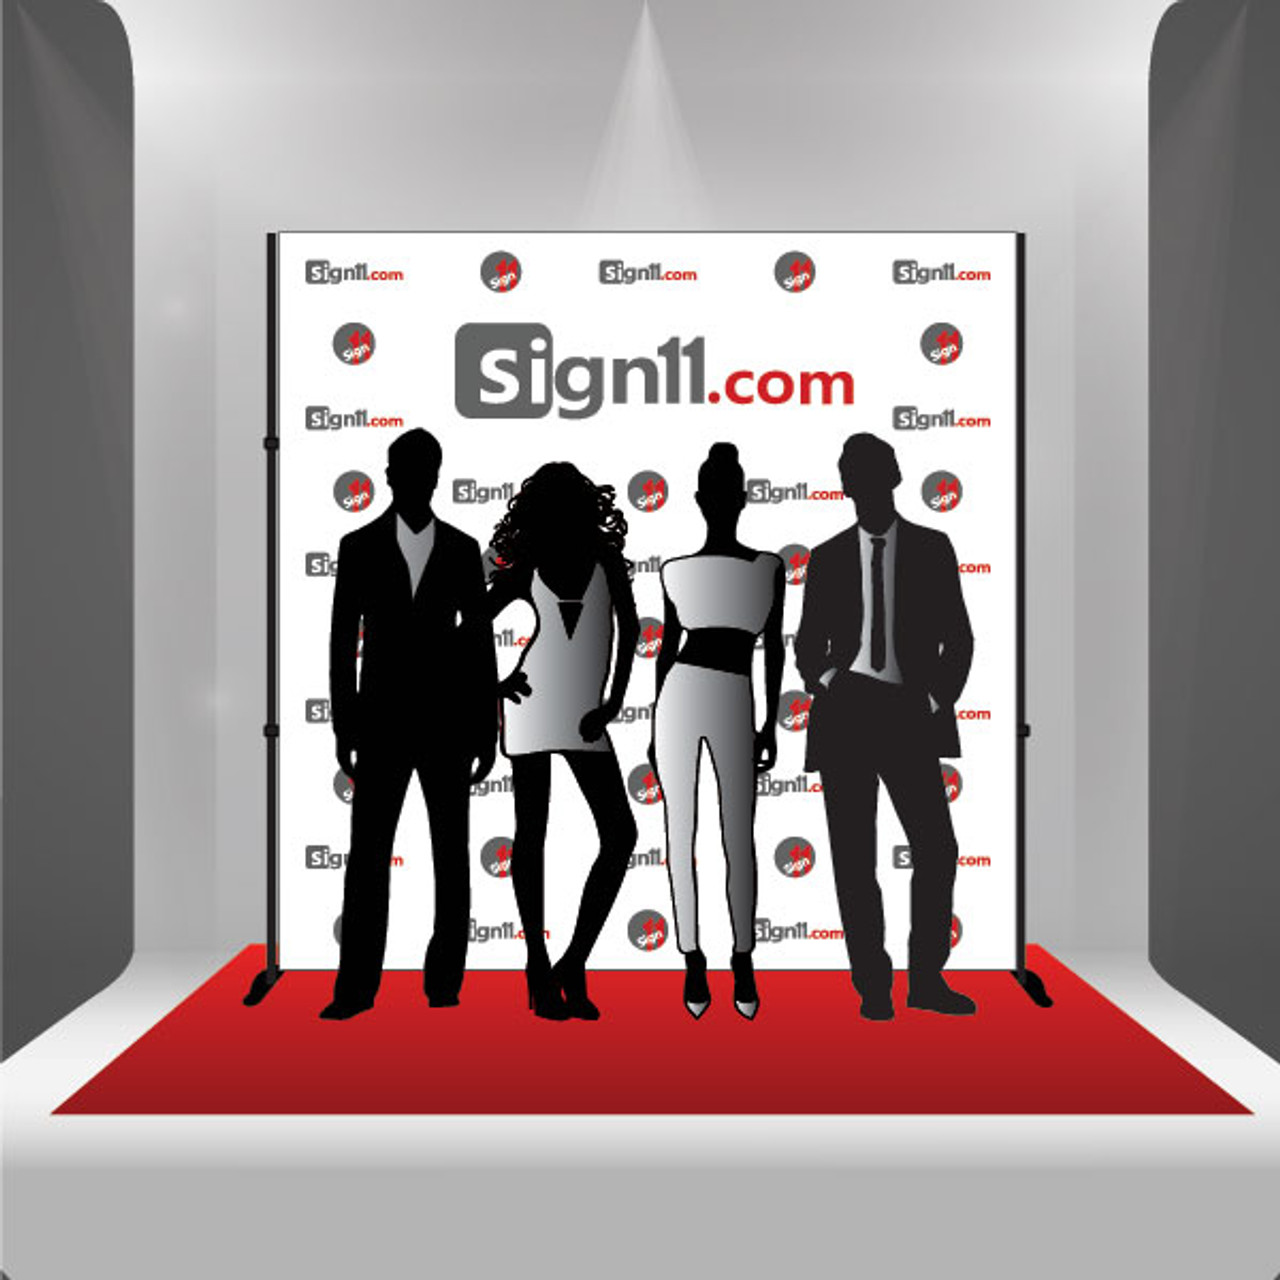 step and repeat 8 x8 stand red carpet sign11 com